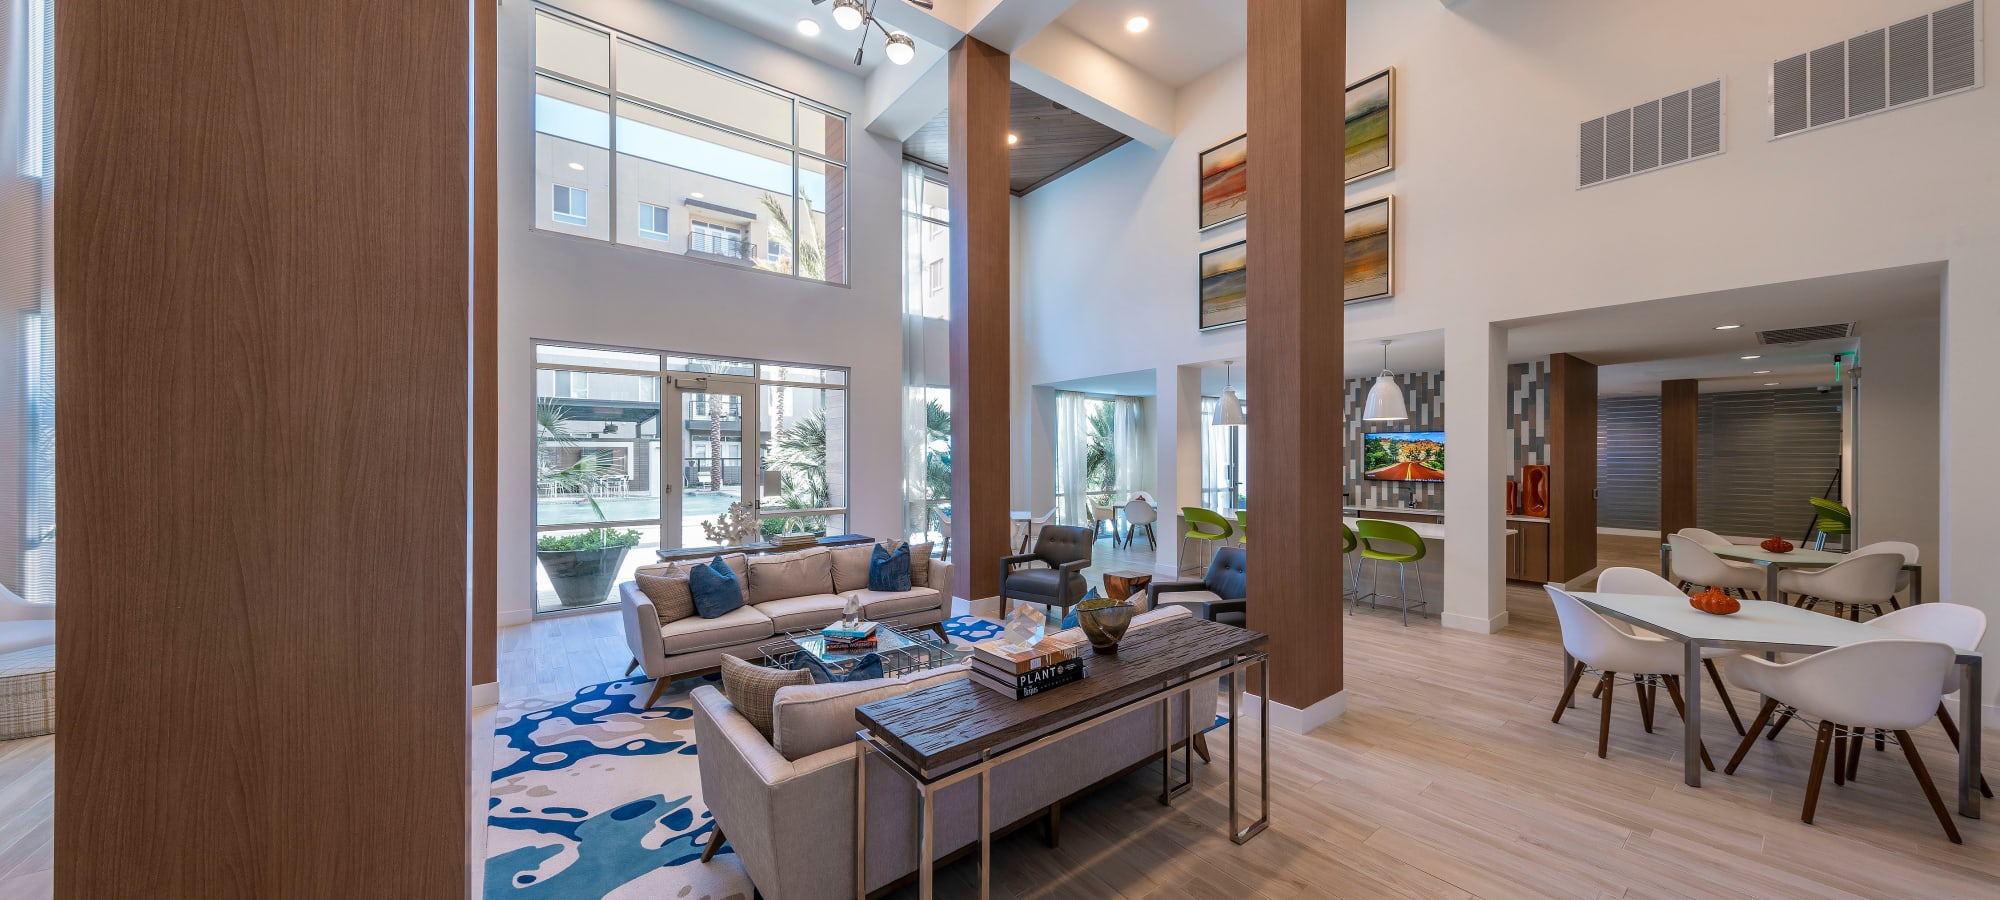 Luxurious resident clubhouse interior at Carter in Scottsdale, Arizona